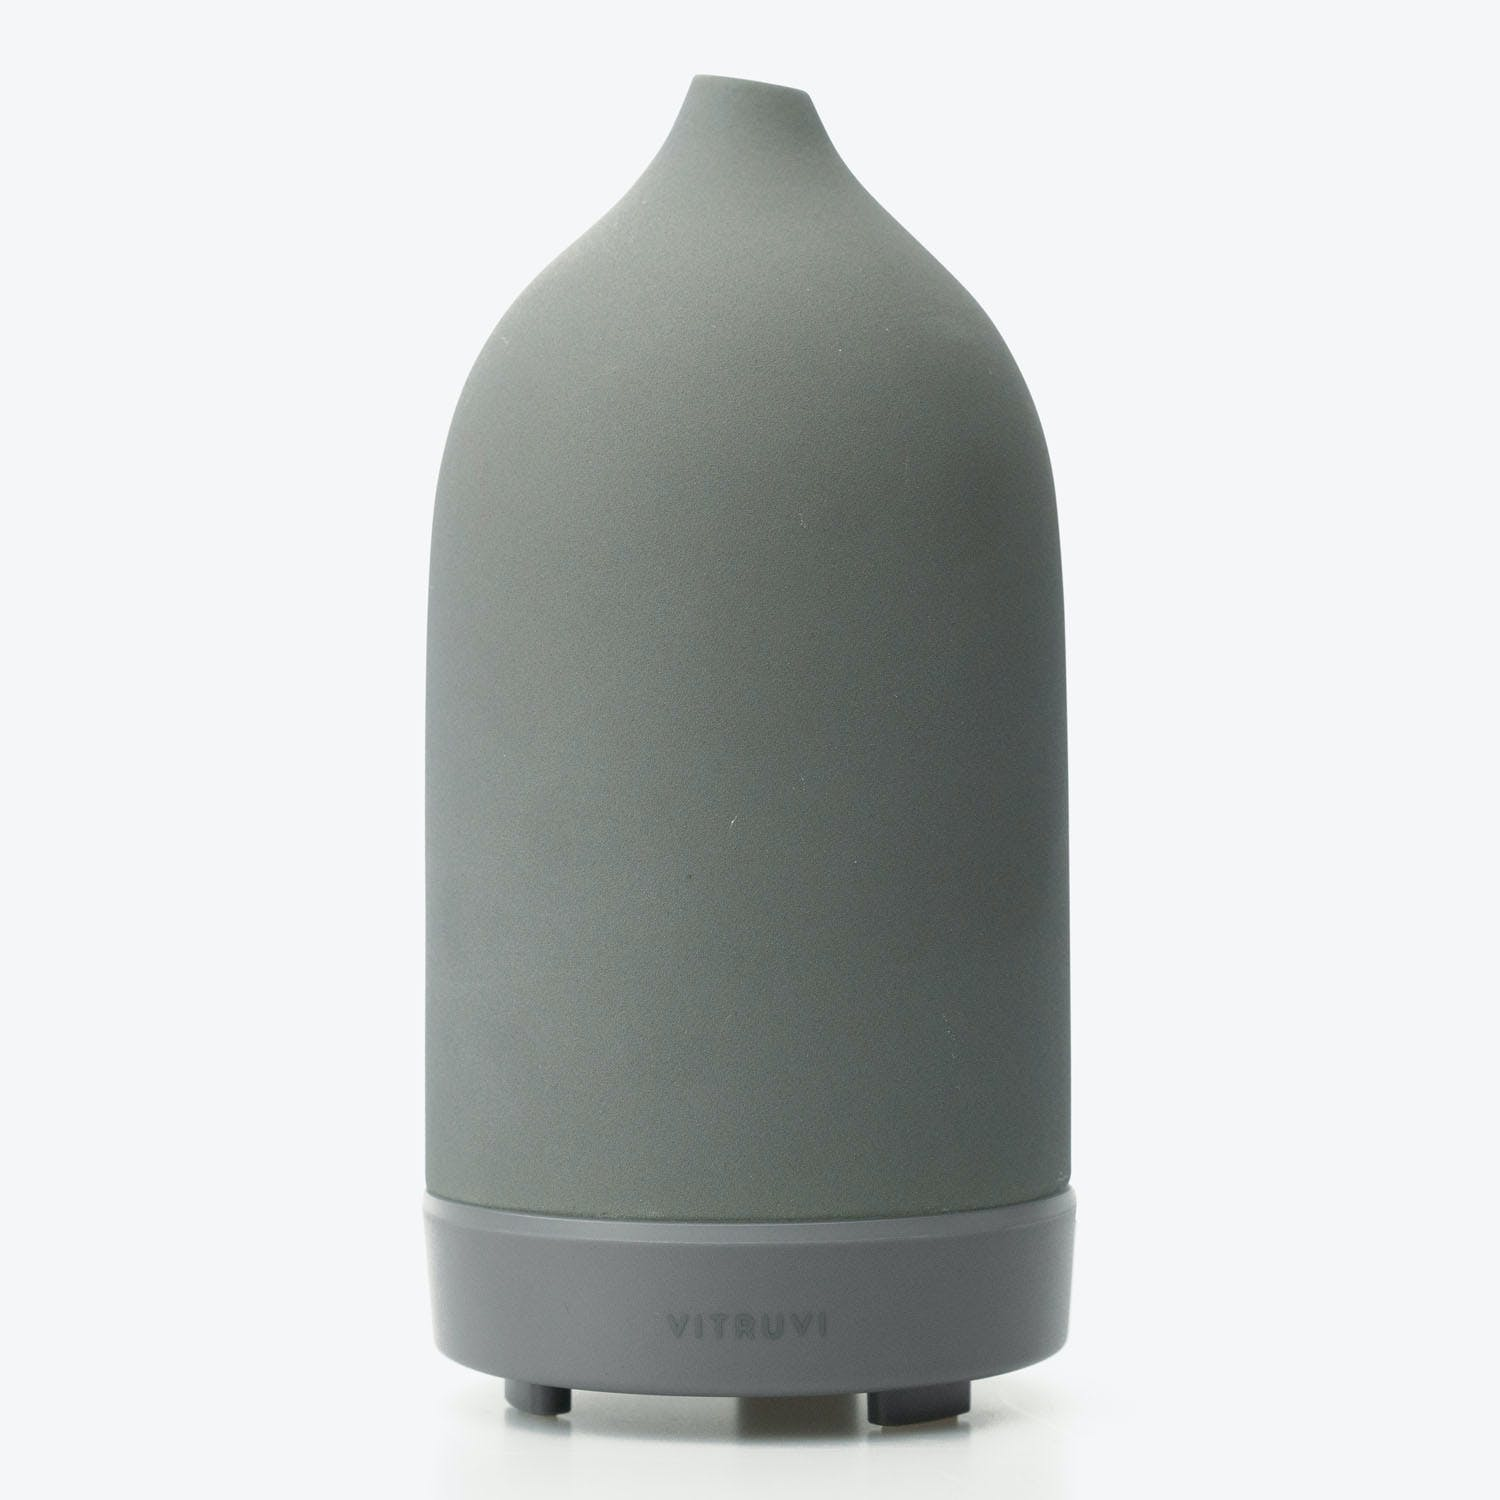 Stone Diffuser Charcoal